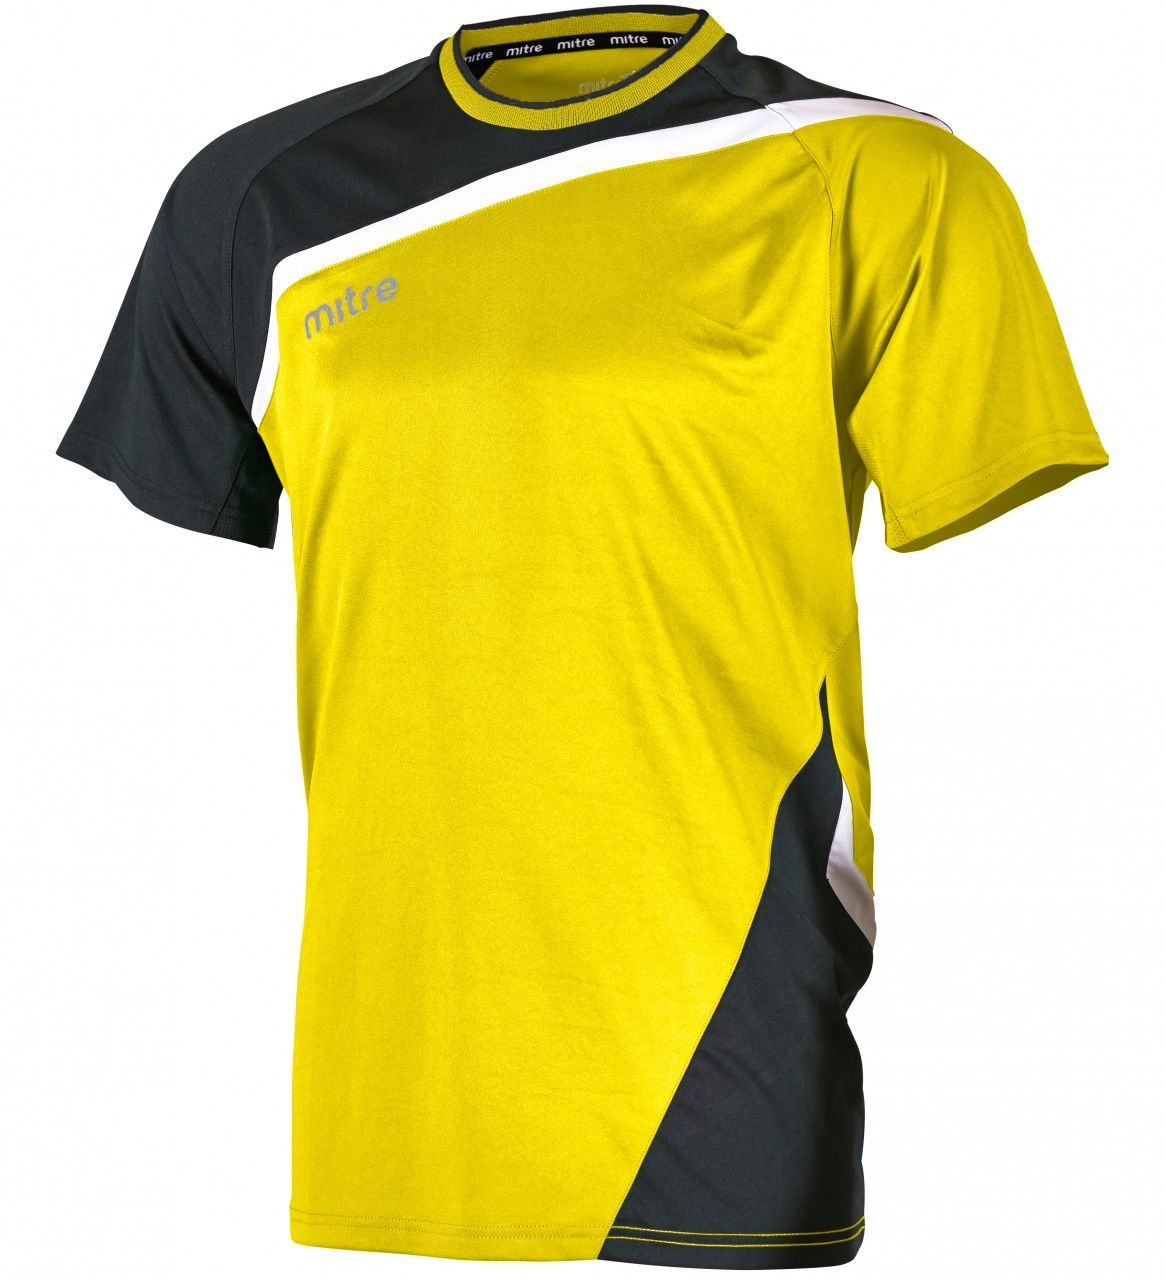 yellow & black harlequin rugby shirt Mitre Temper Jersey